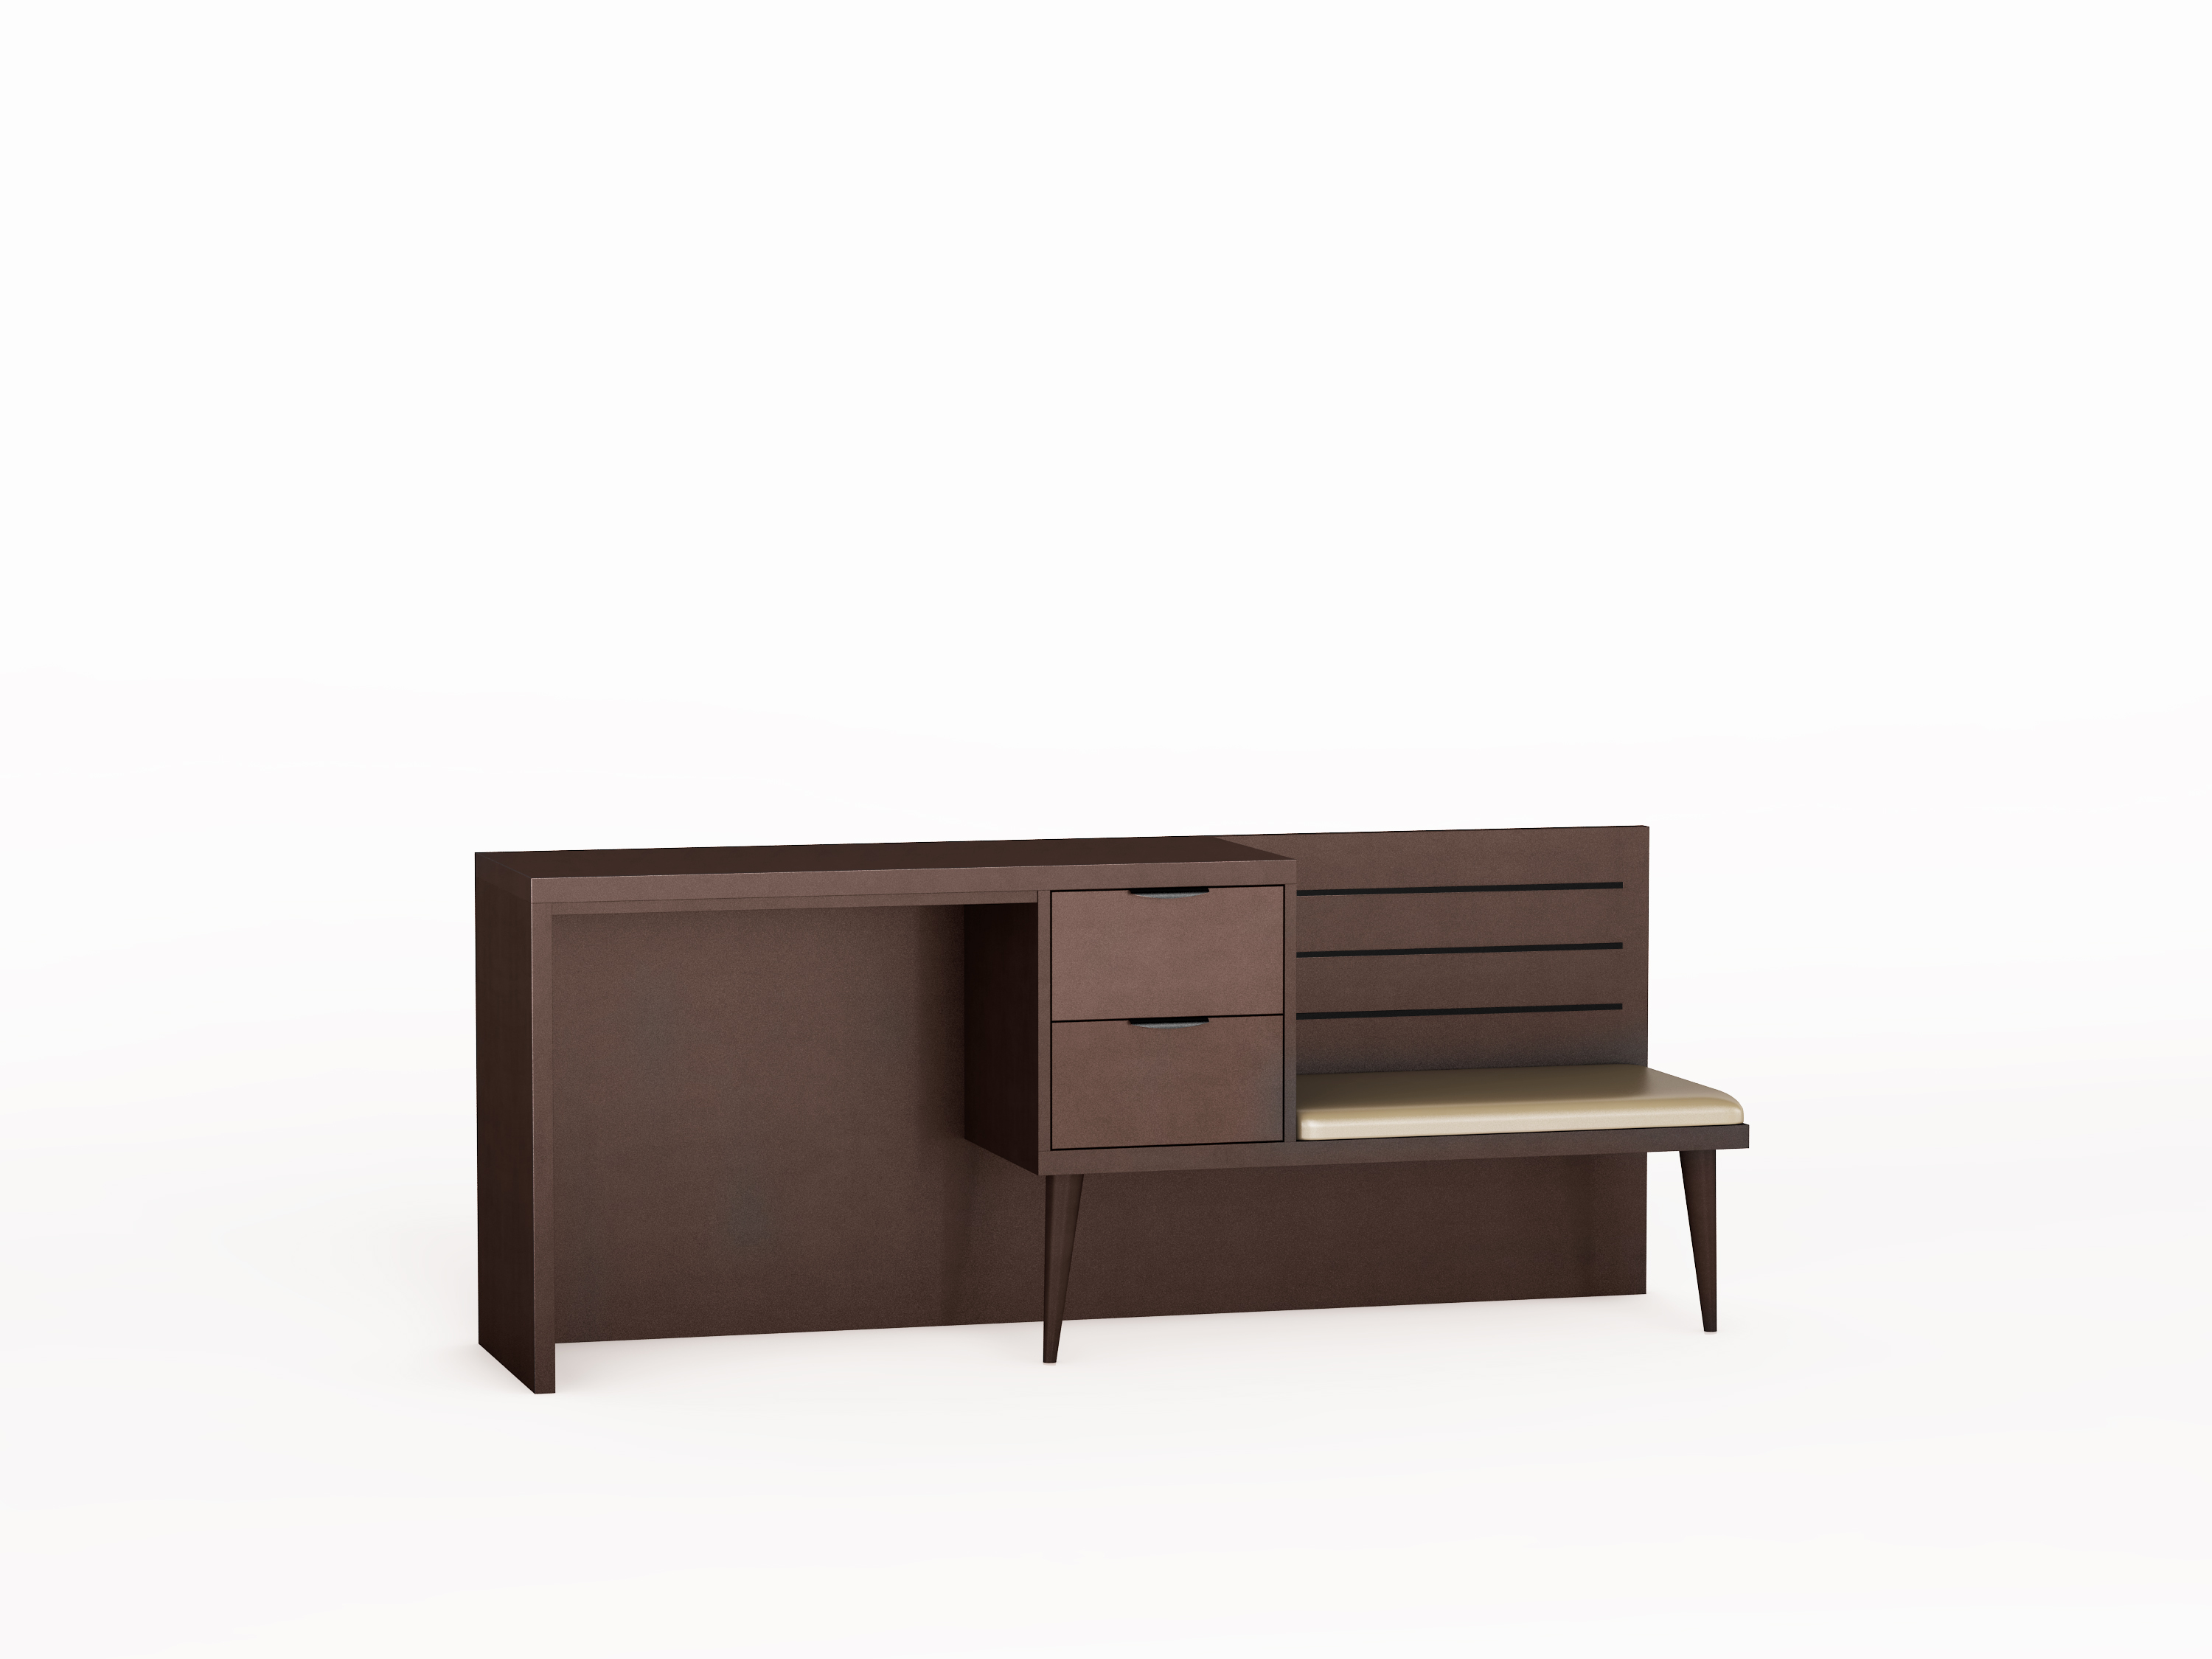 Icon Furniture Sutton Desk Bench Combo